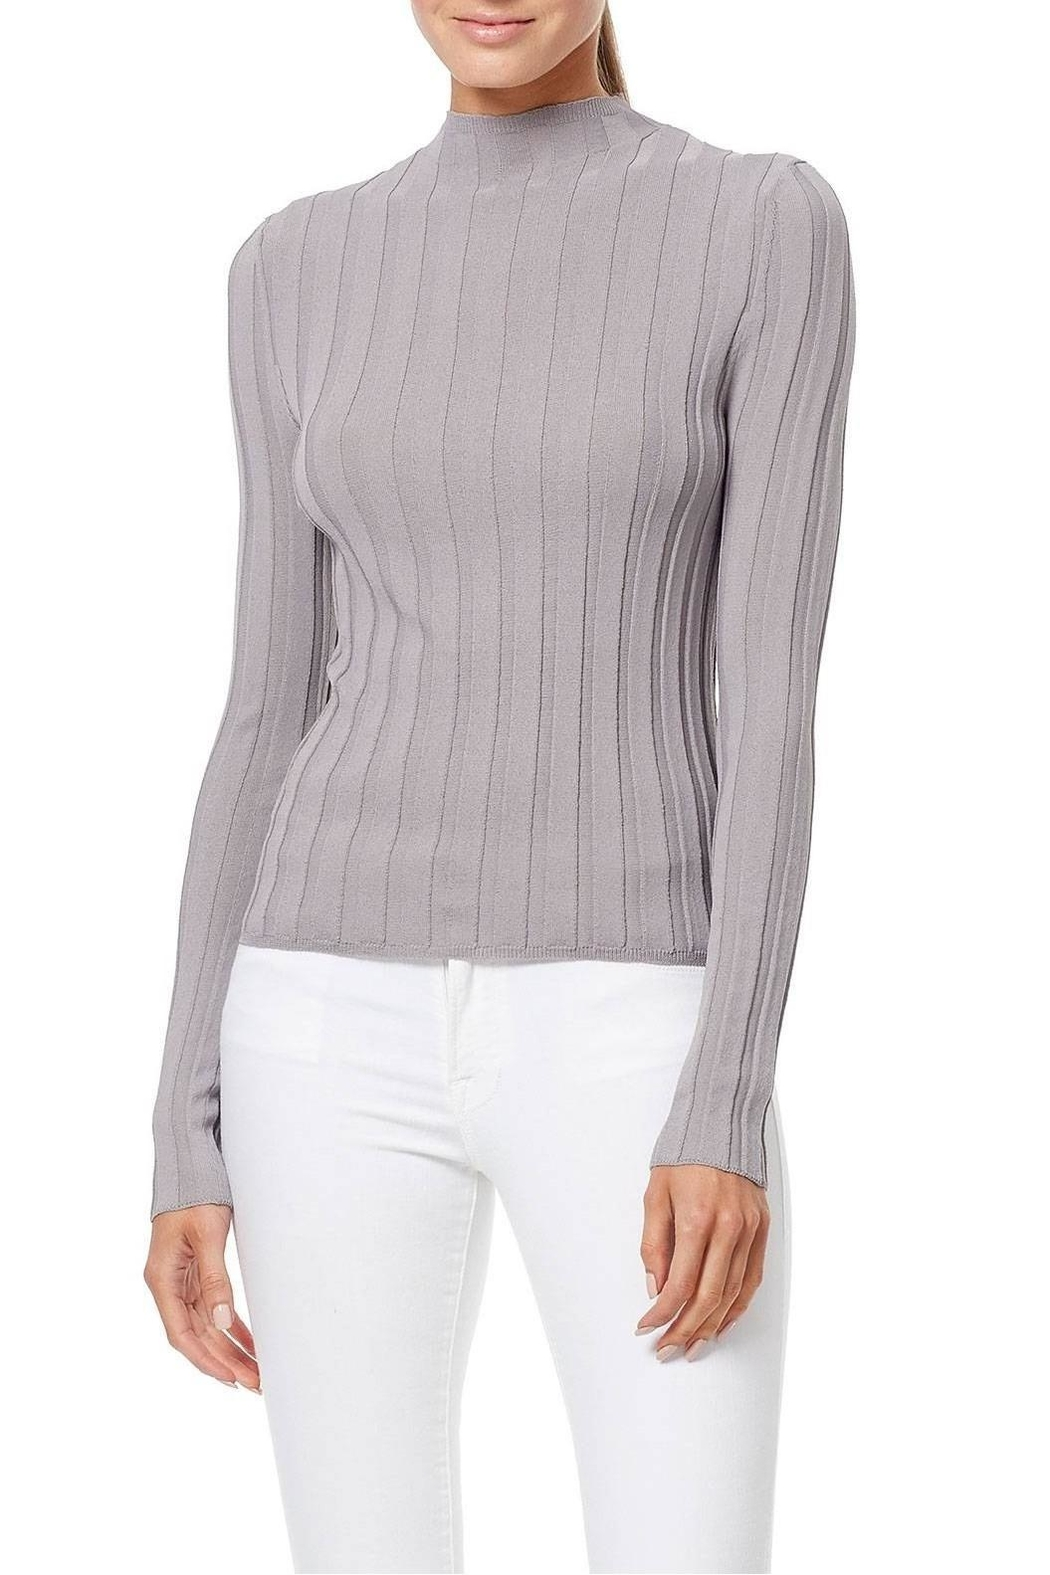 360 Cashmere Amalie Ribbed Top - Front Cropped Image